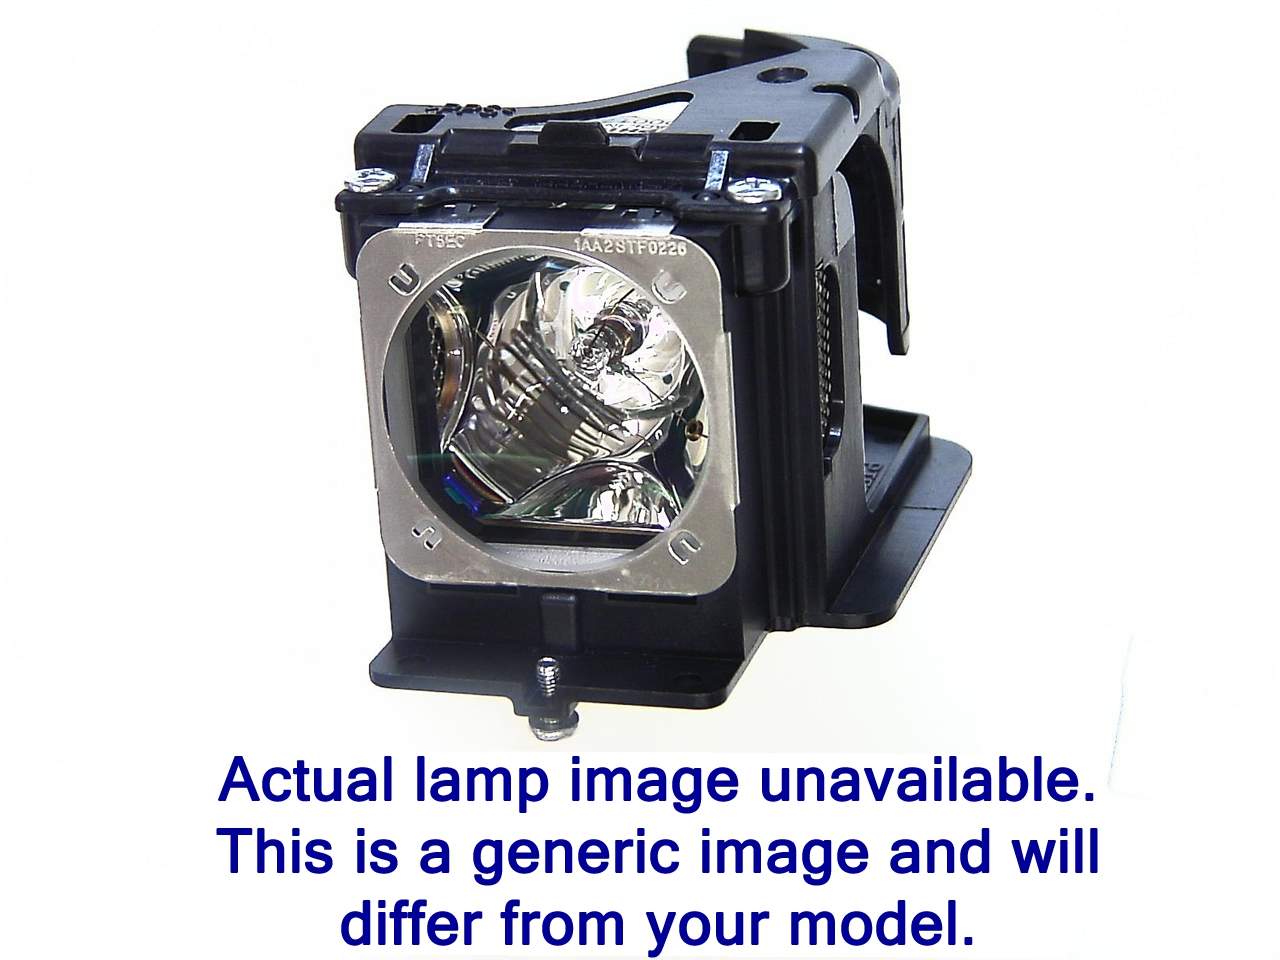 UTAX 11357005 Lamp Replacement for DXL 5015